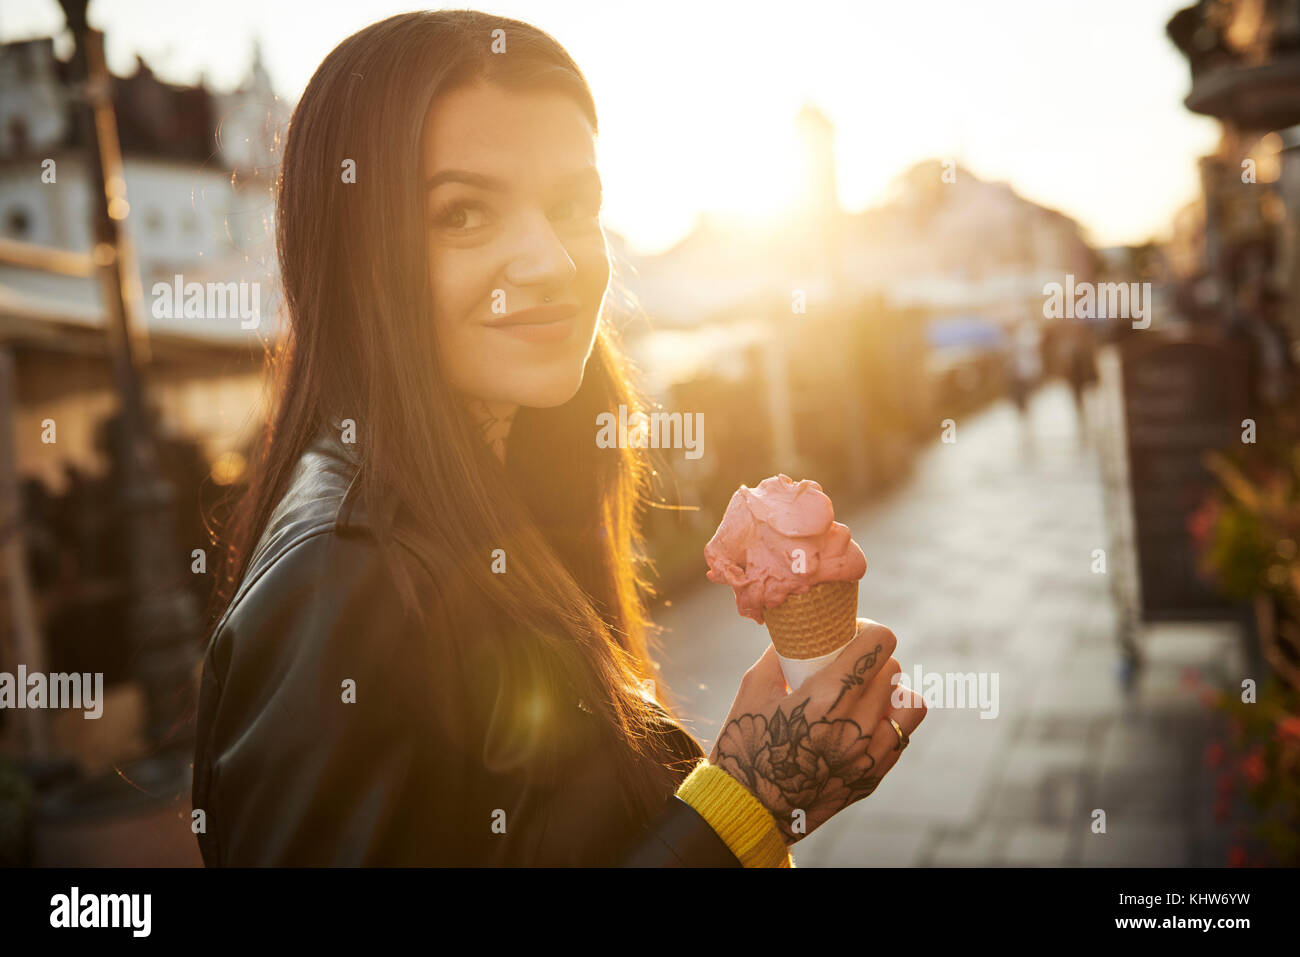 Portrait of young woman holding ice cream, tattoos on hand - Stock Image